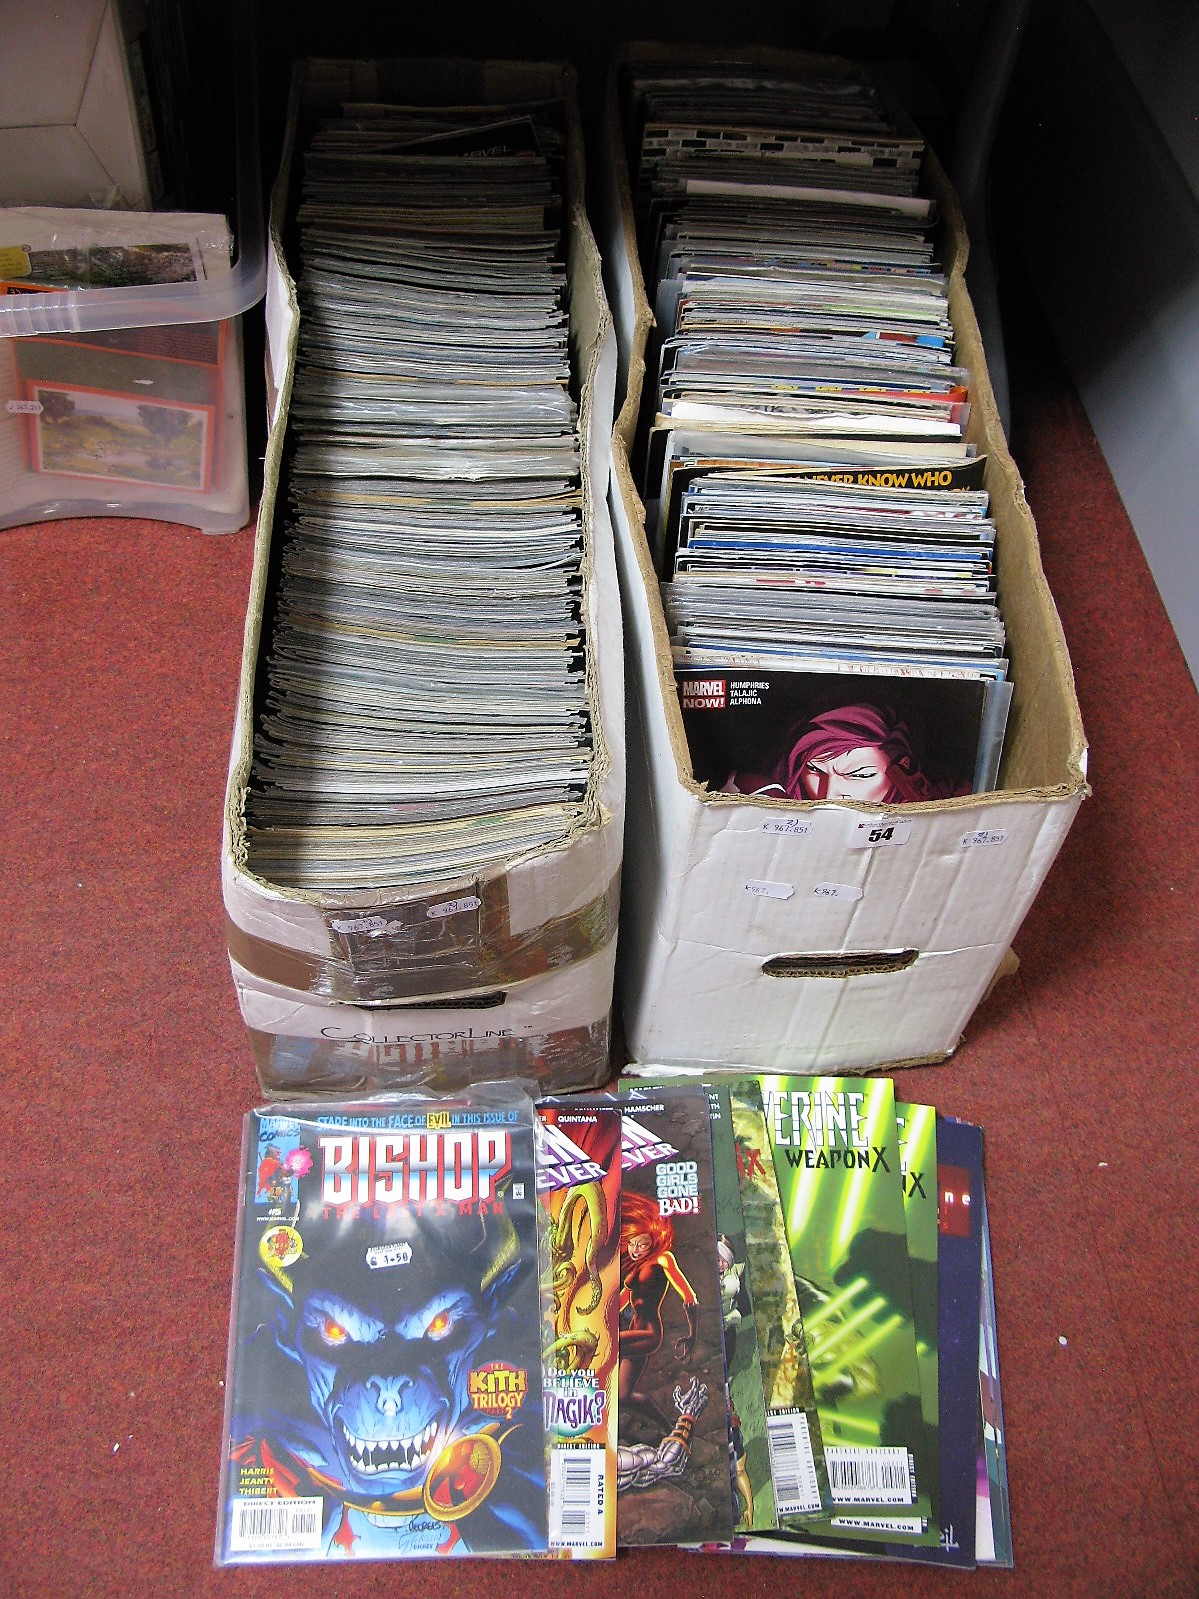 Lot 54 - In Excess of Five Hundred Comics By Marvel, Max comics, DC, IDW, Including X-Men Forever,